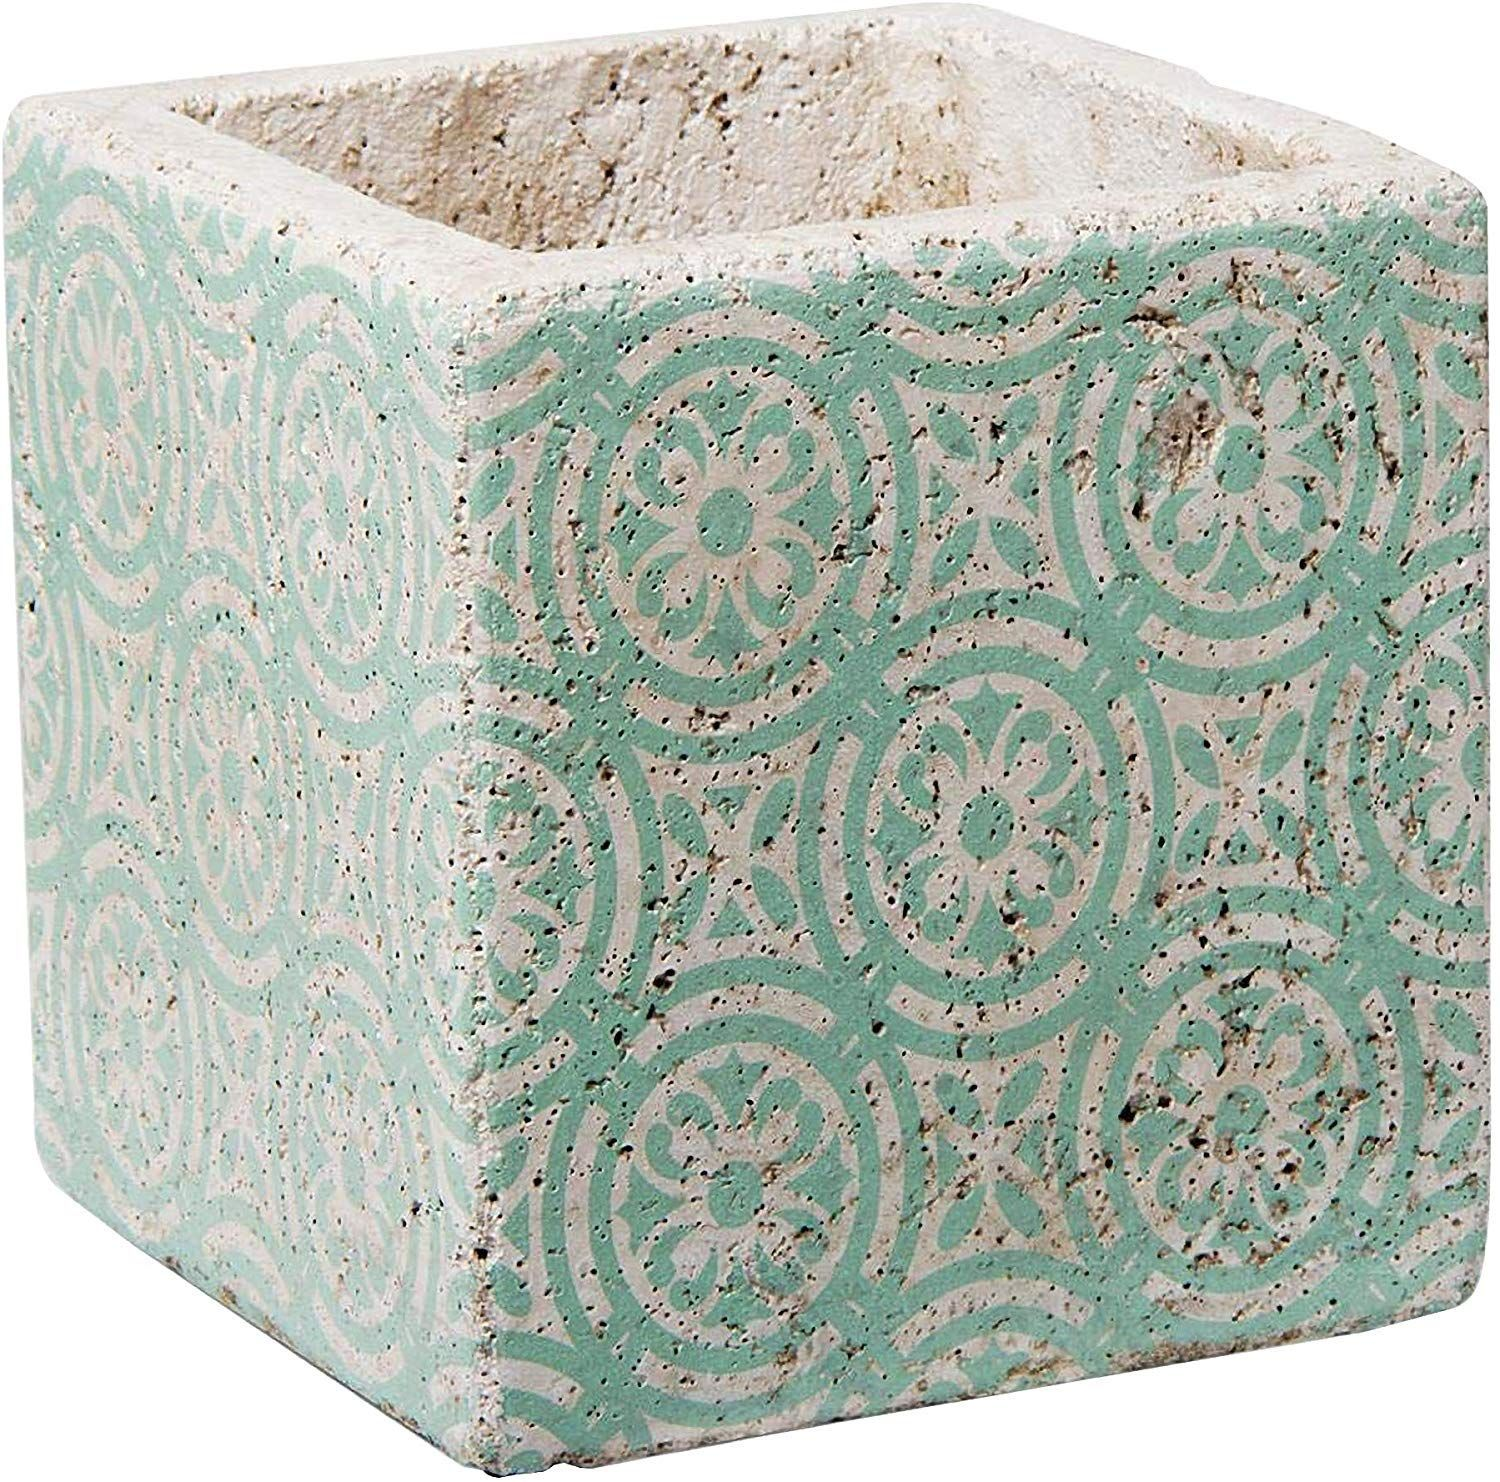 TAG Planter Plant Pot Succulents Indoor Outdoor Square Nomad Ceramic Cement Concrete Boxes White Teal Blue Green and White 55 Inches Squaredblue